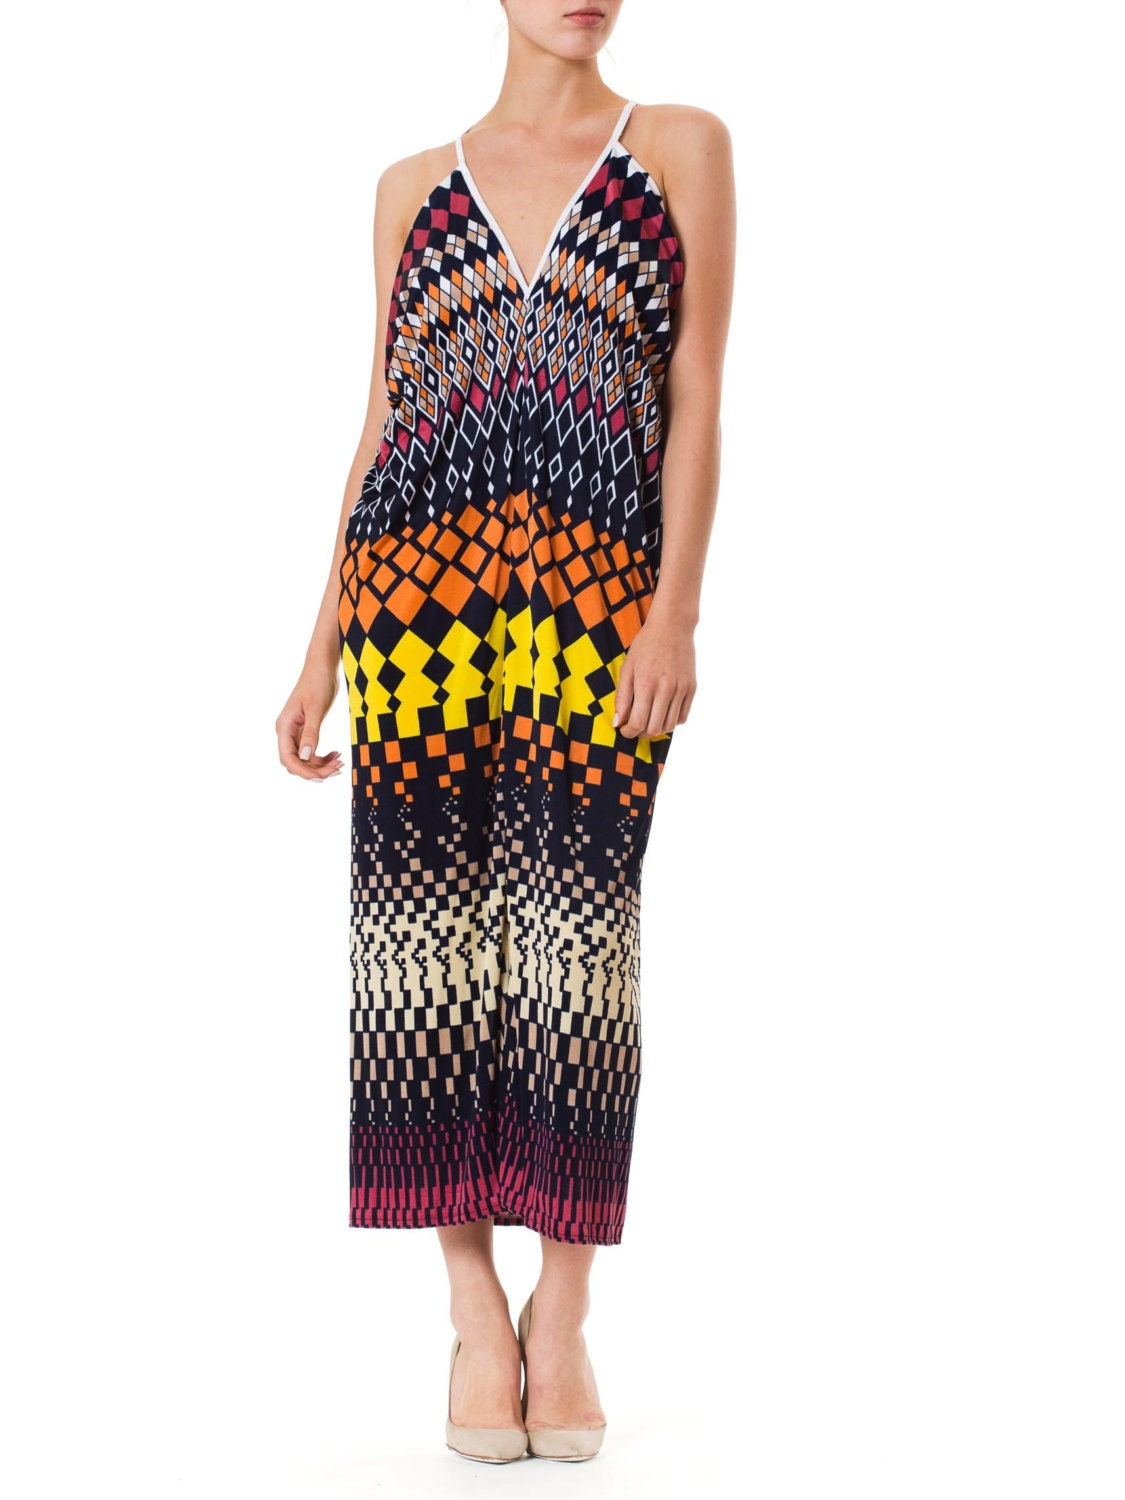 06693382b69 1970S MORPHEW LAB Maxi Resort Dress 1 Size  OS